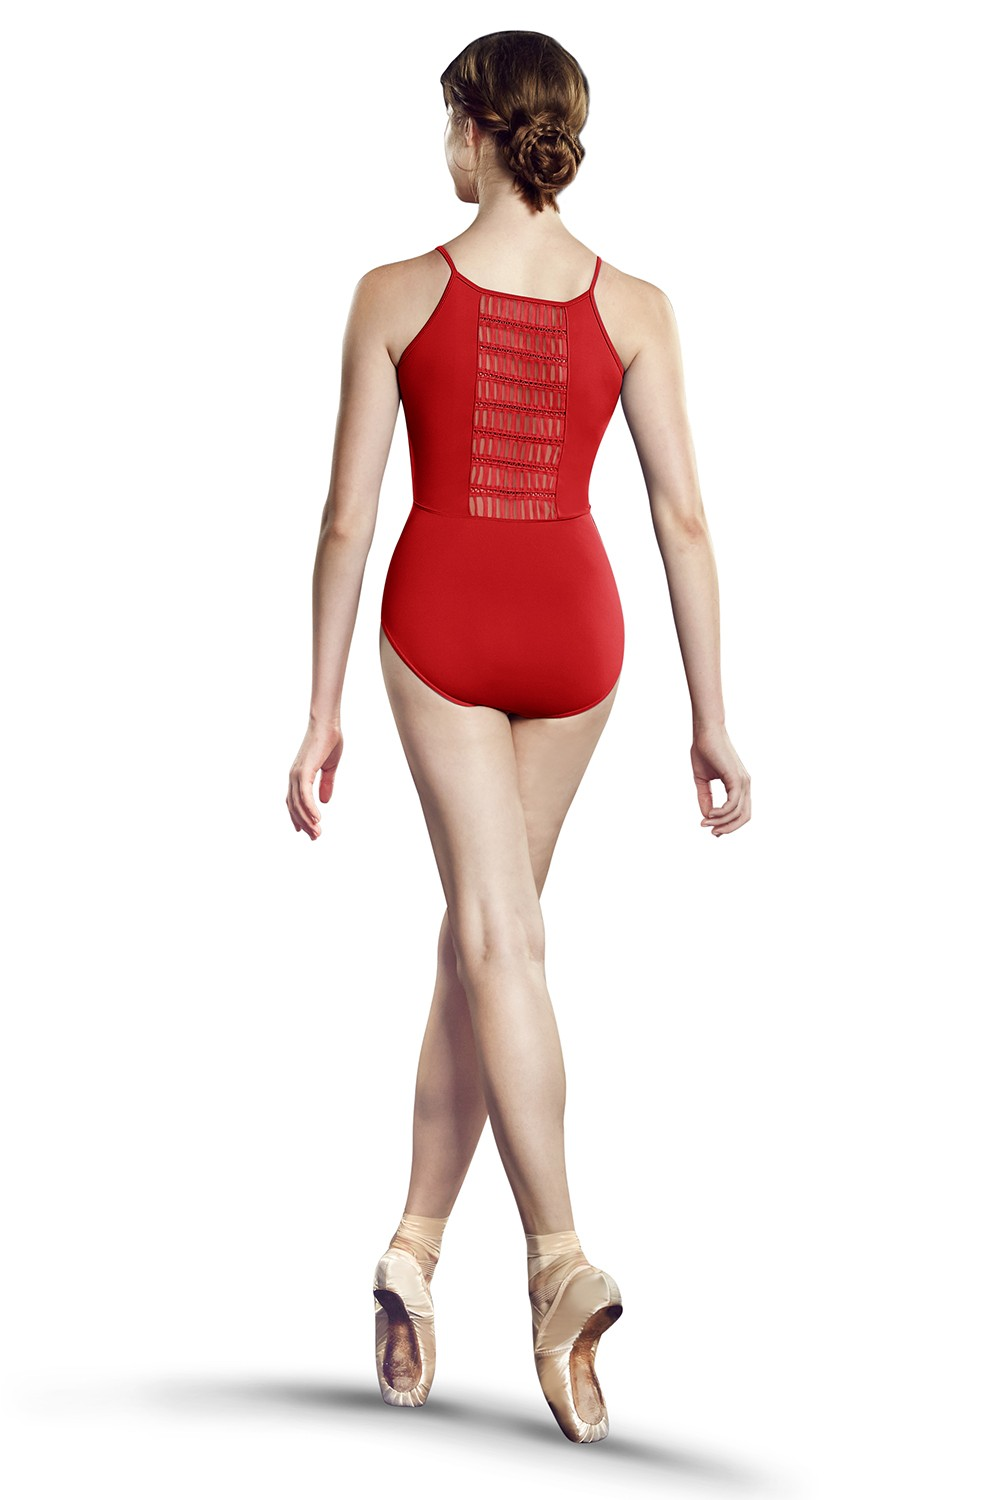 Mesh High Bk Camileo Women's Dance Leotards